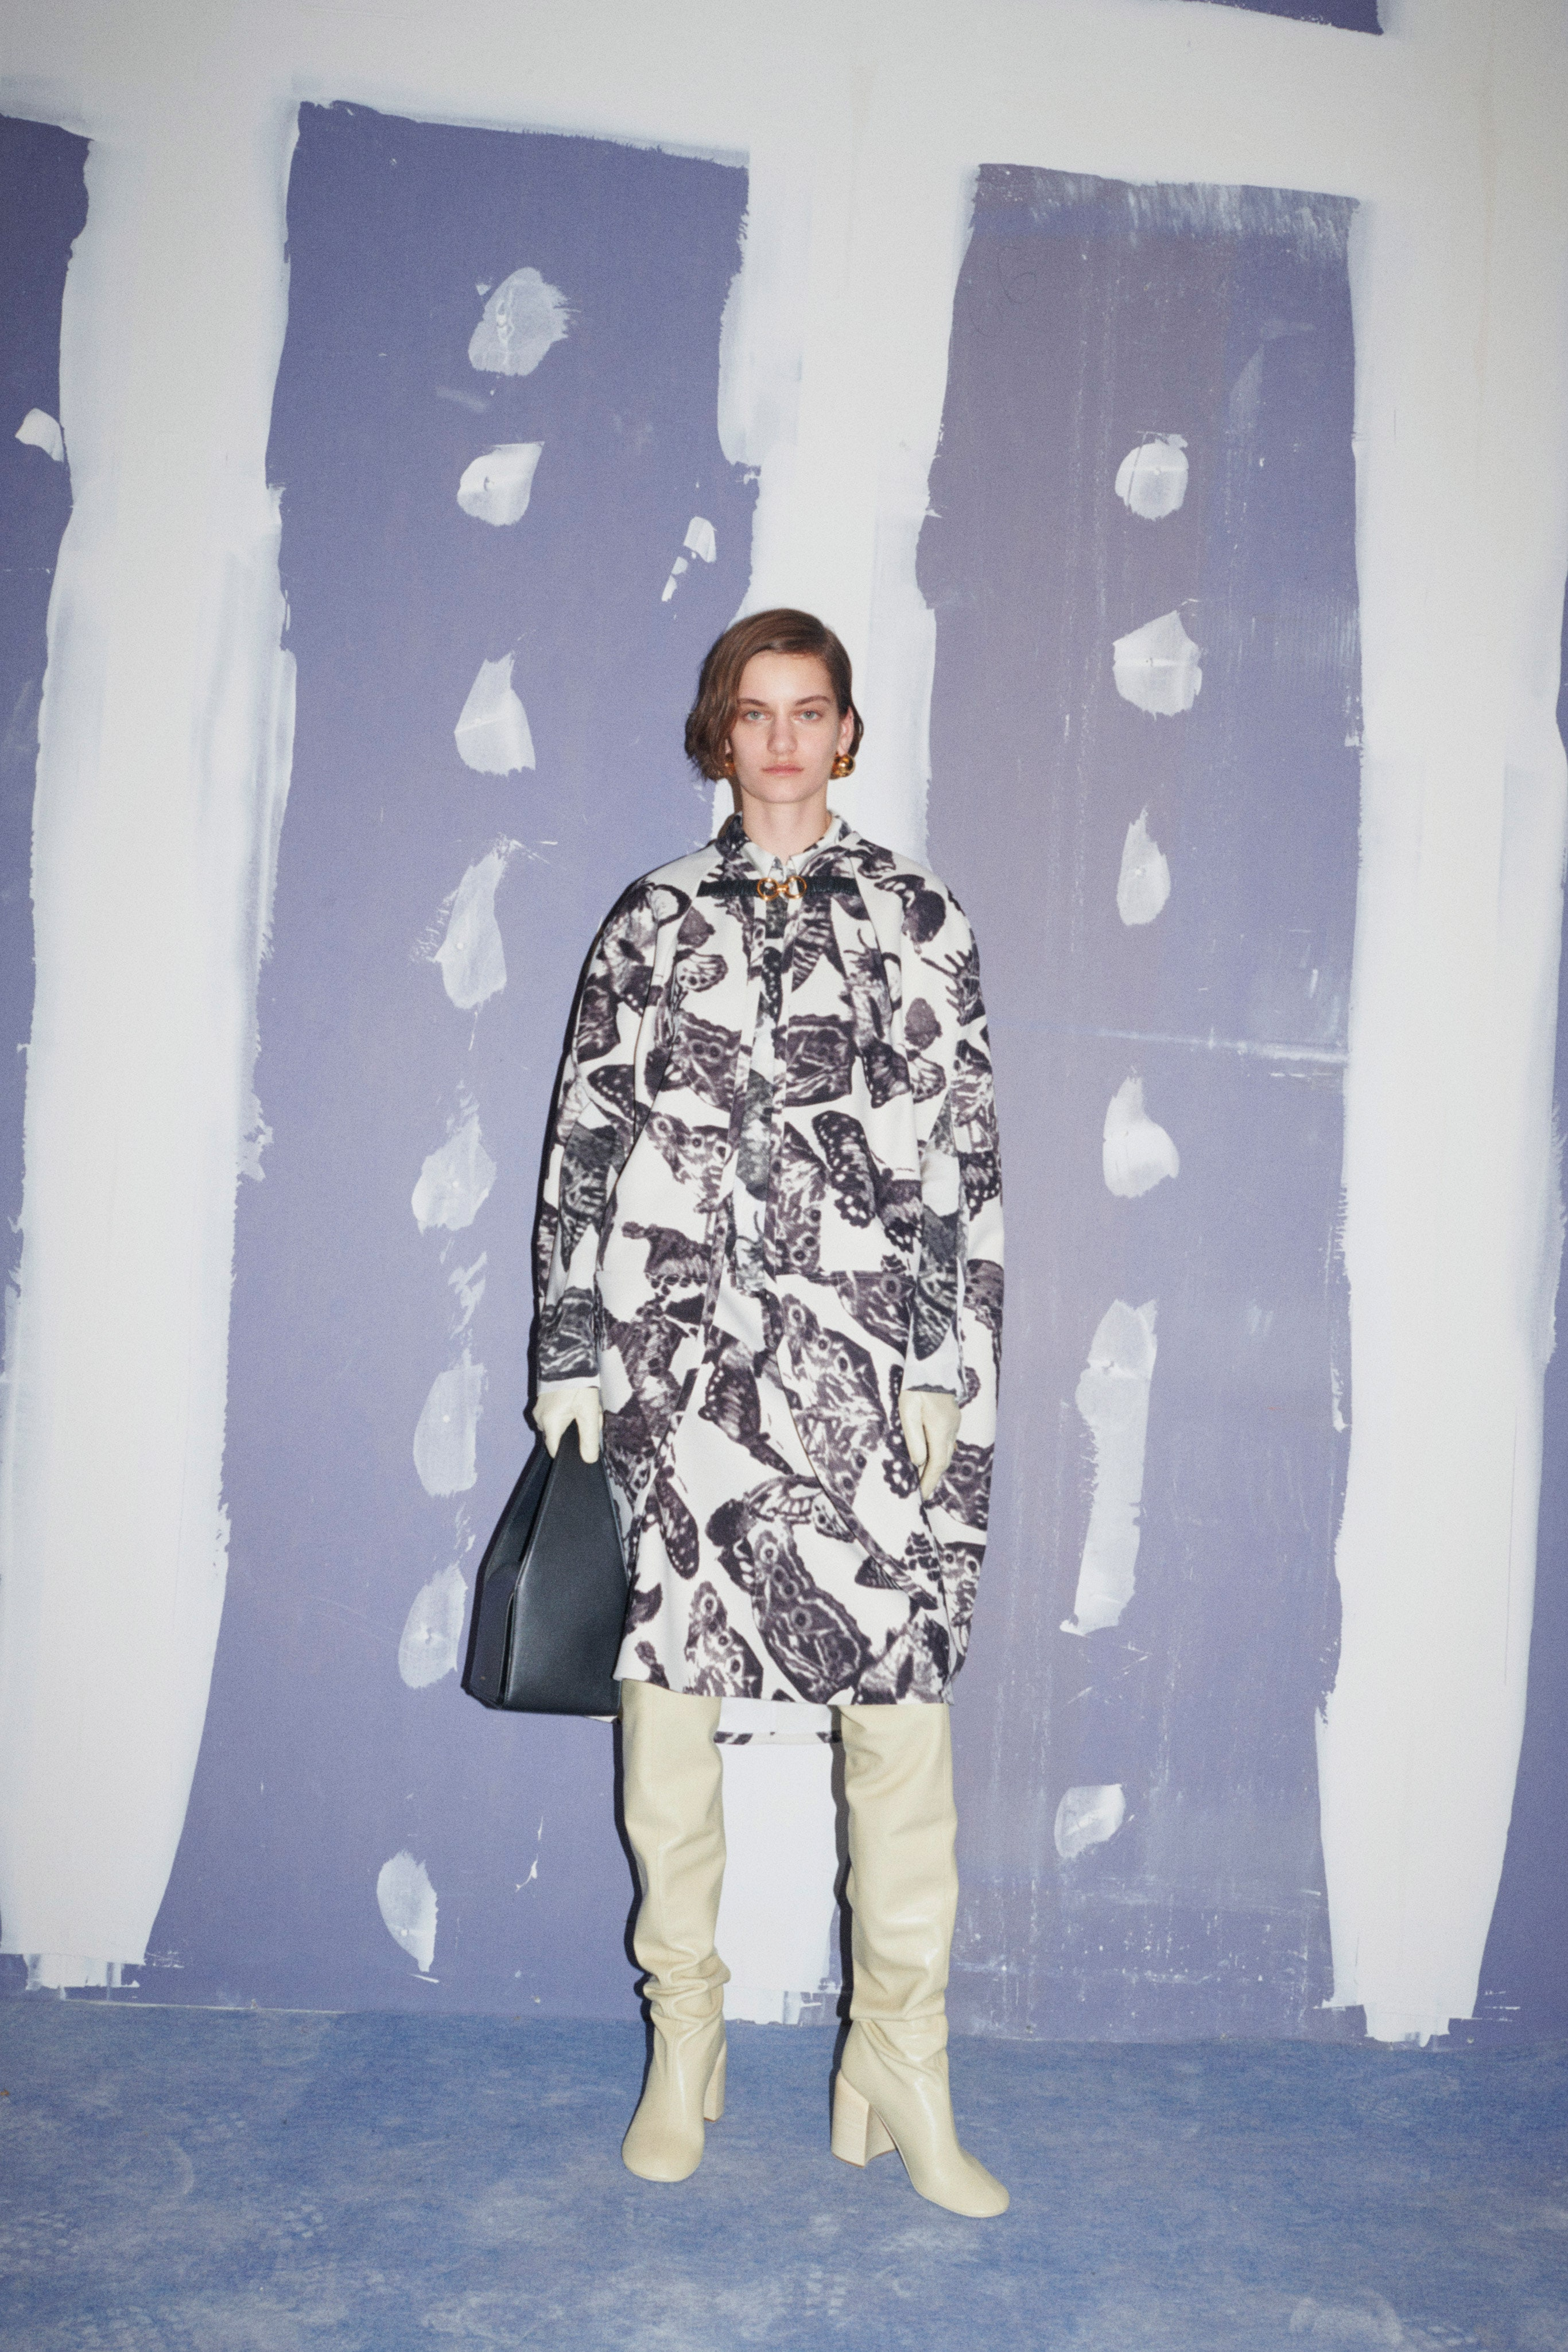 For walks in the fresh air: A seasonal collection of Jil Sander arrived at Asthik (photo 26)